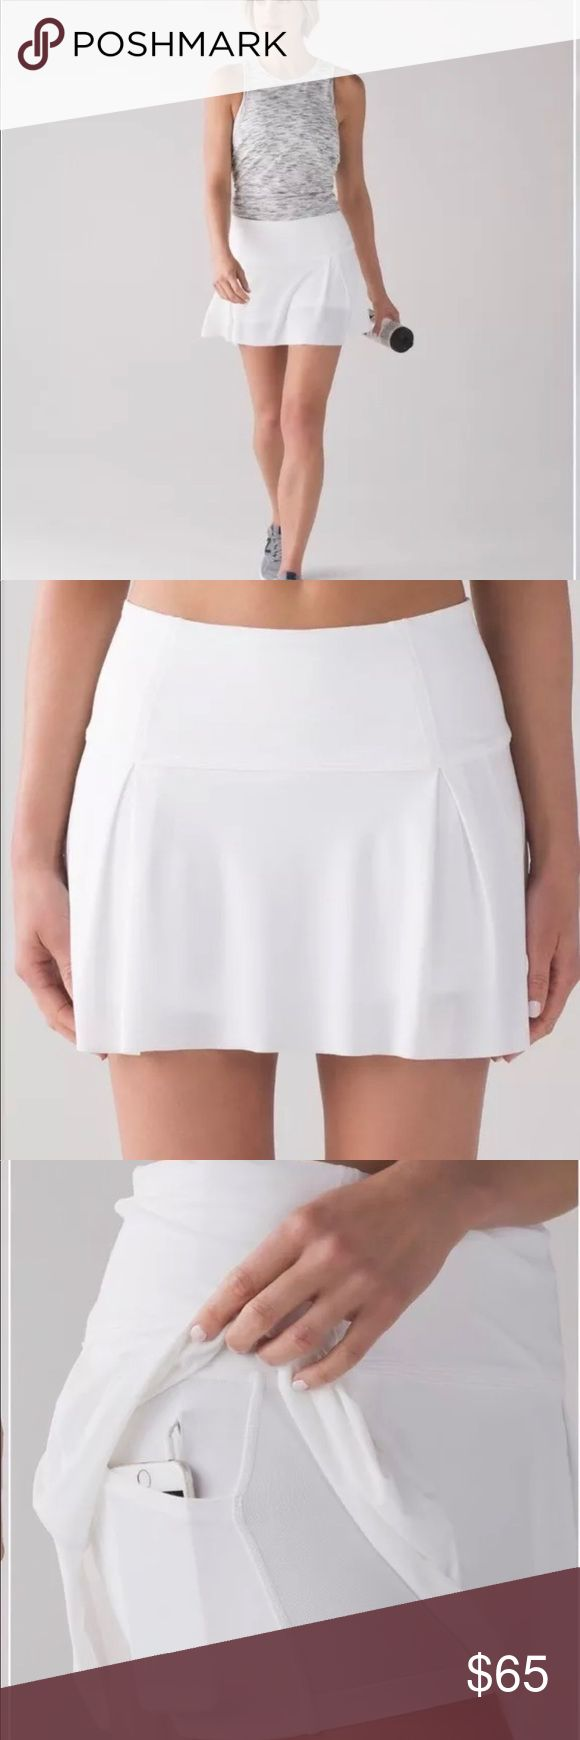 NWT! Lululemon -Lost In Pace Skirt- White 6 Tennis, Golf, Running & Sports. This breezy skirt was designed with stretchy built-in short so you can go from the trails to the tennis court without slowing down. Hugged Sensation; Medium rise. Designed to feel light and keep you covered, Luxtreme fabric is sweat-wicking with four-way stretch. LYCRA® fibre adds great shape retention. Side Pockets in shorts. Cord exit for headphones lululemon athletica Shorts Skorts